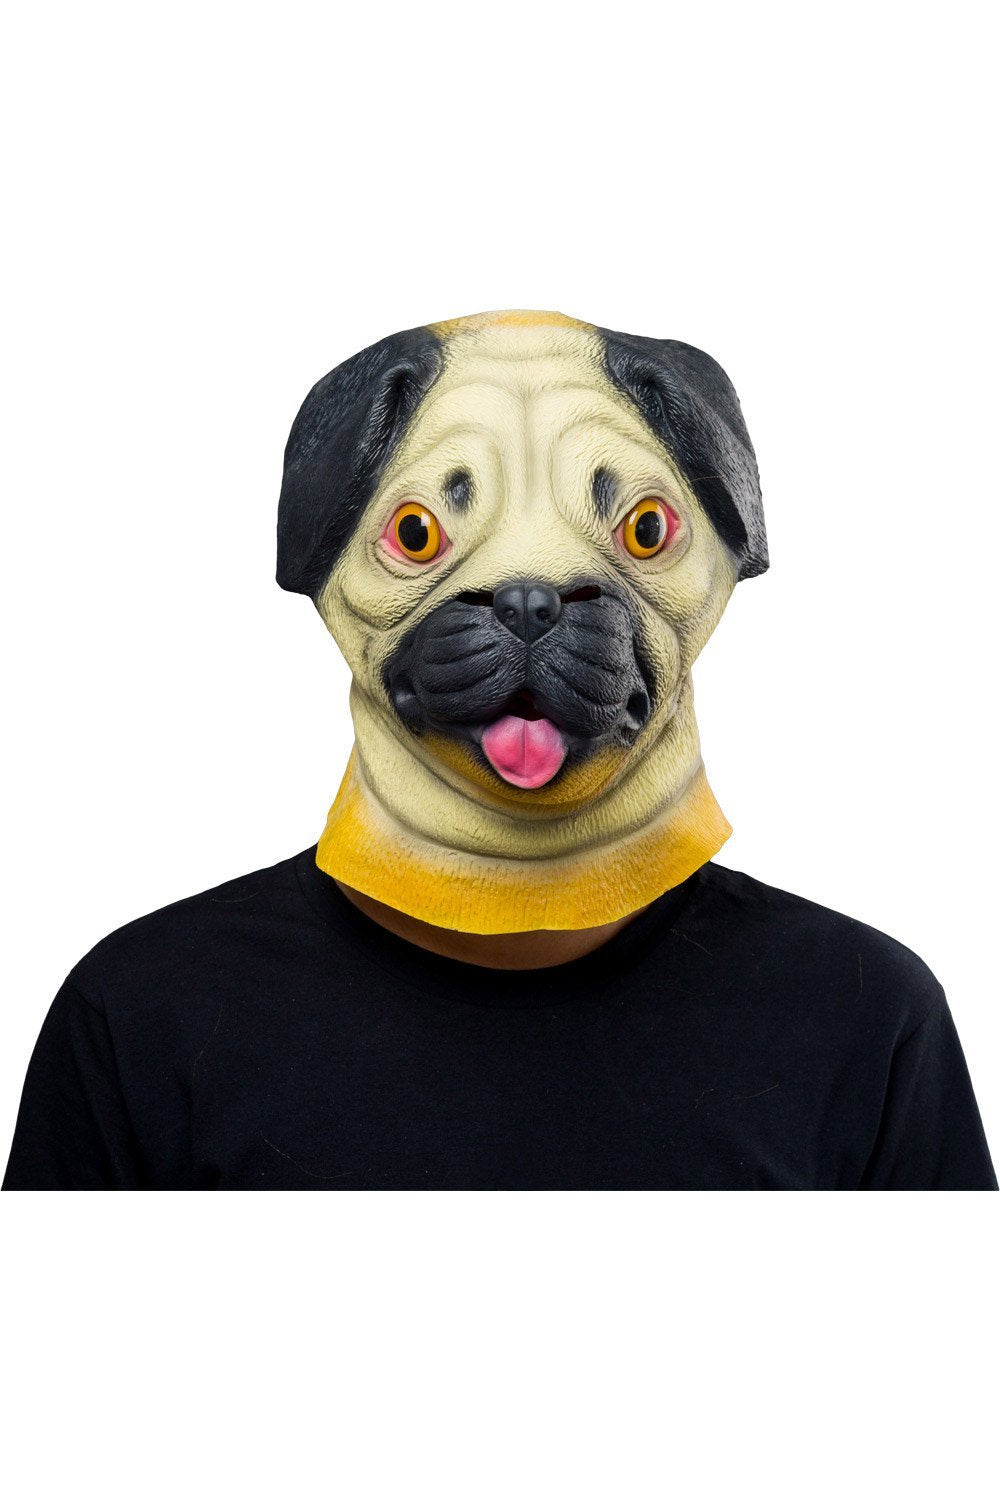 SharPei Dog Mask Halloween Animal Latex Masks Full Face Mask Adult Cosplay Prop